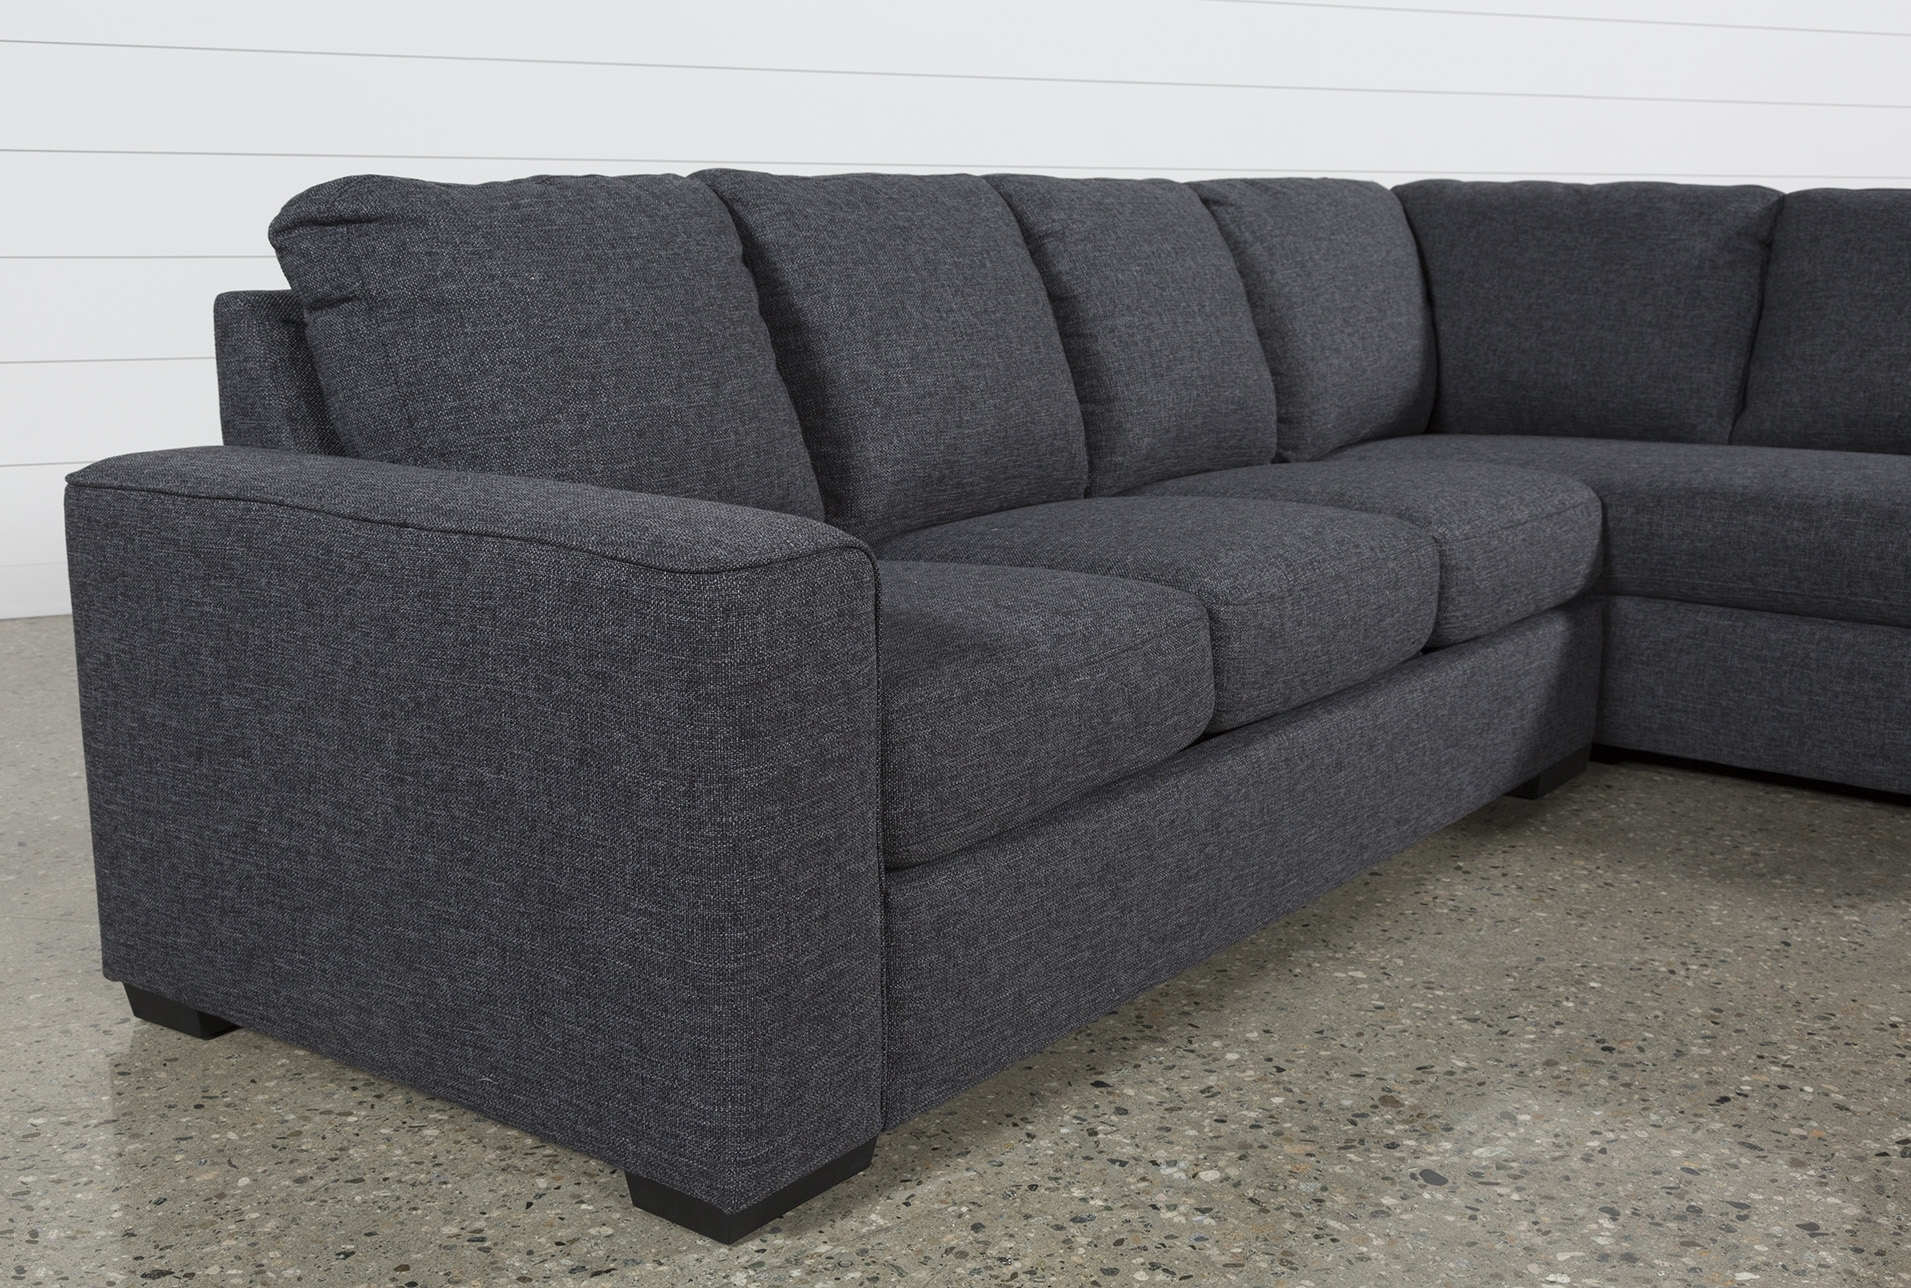 Lucy Dark Grey 2 Piece Sectional W/raf Chaise | Pinterest | Dark In Lucy Dark Grey 2 Piece Sectionals With Raf Chaise (View 4 of 25)